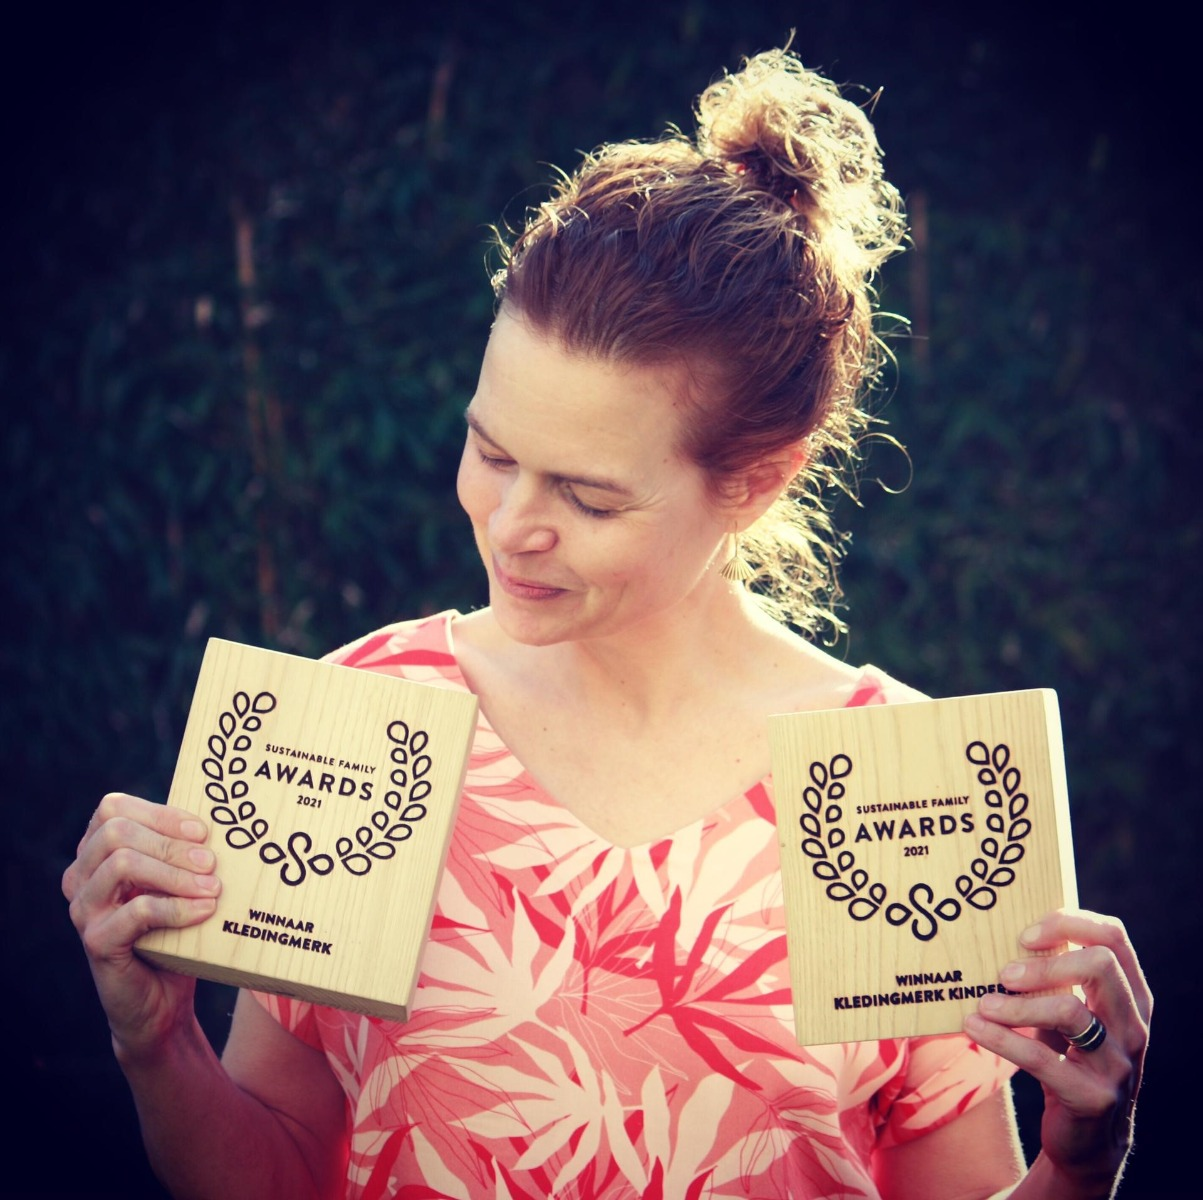 Anne with our Sustainable Family Awards